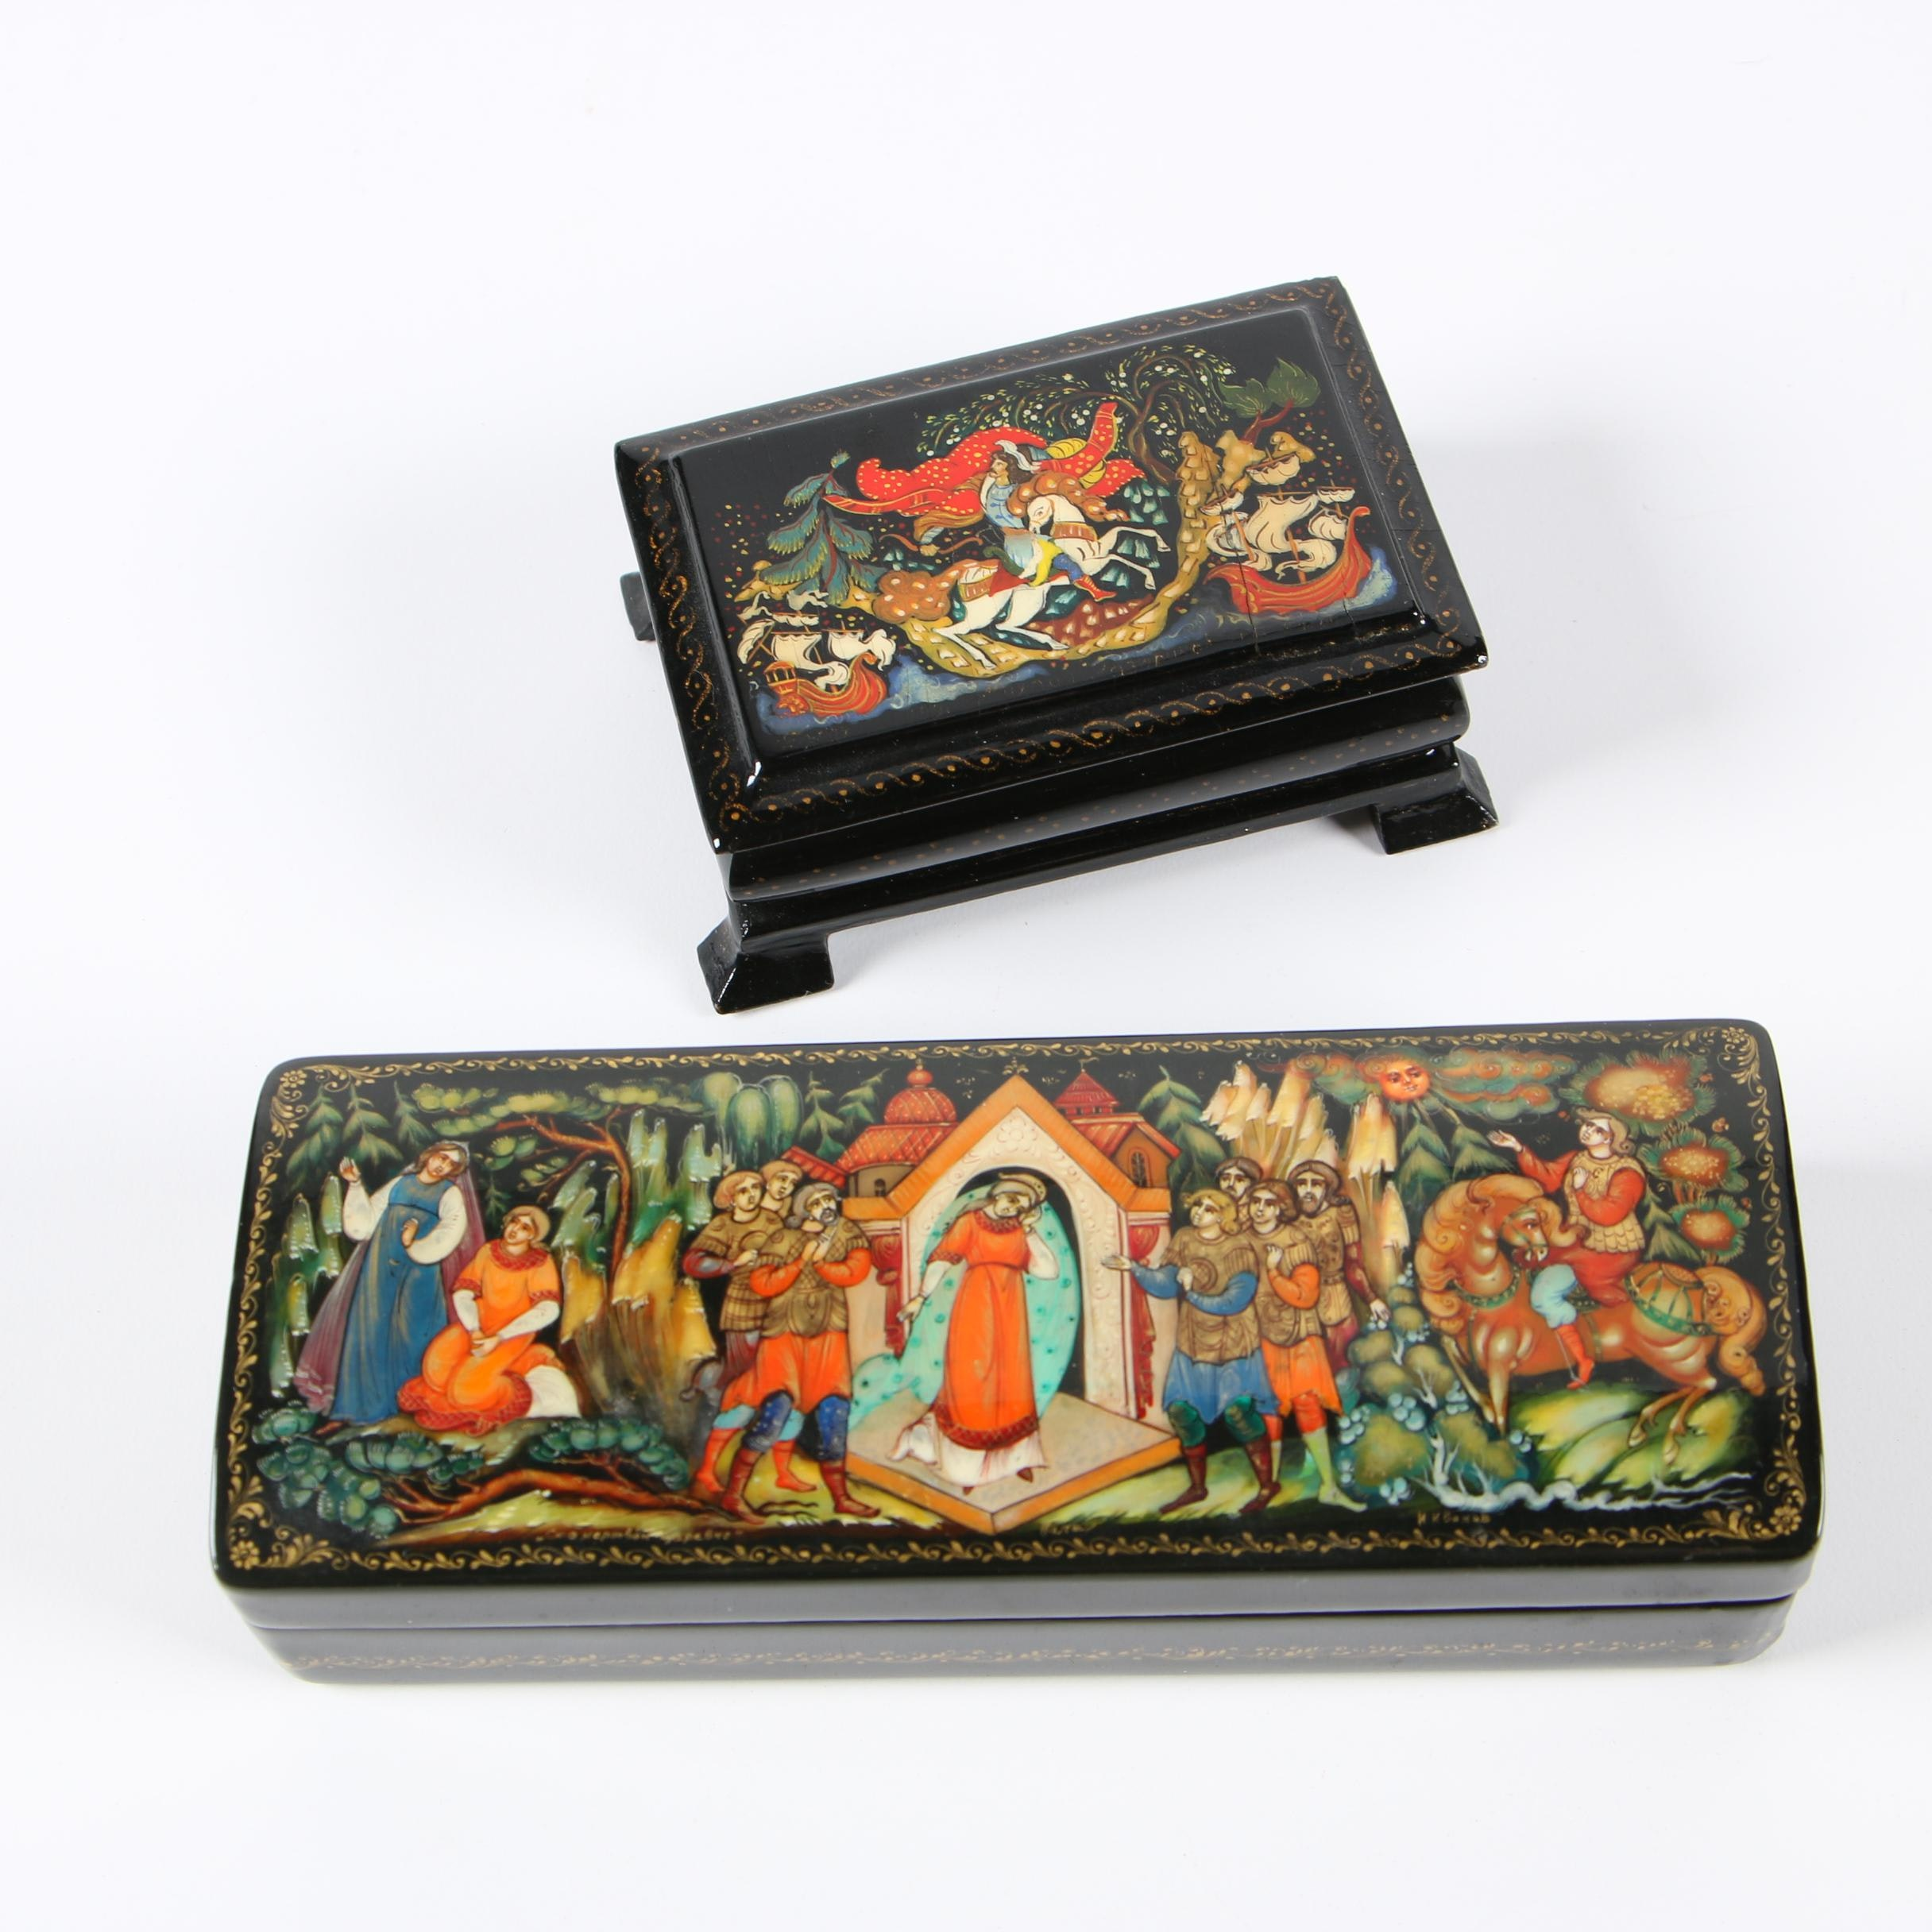 Russian Hand-Painted Lacquered Trinket Boxes with Folklore Scenes